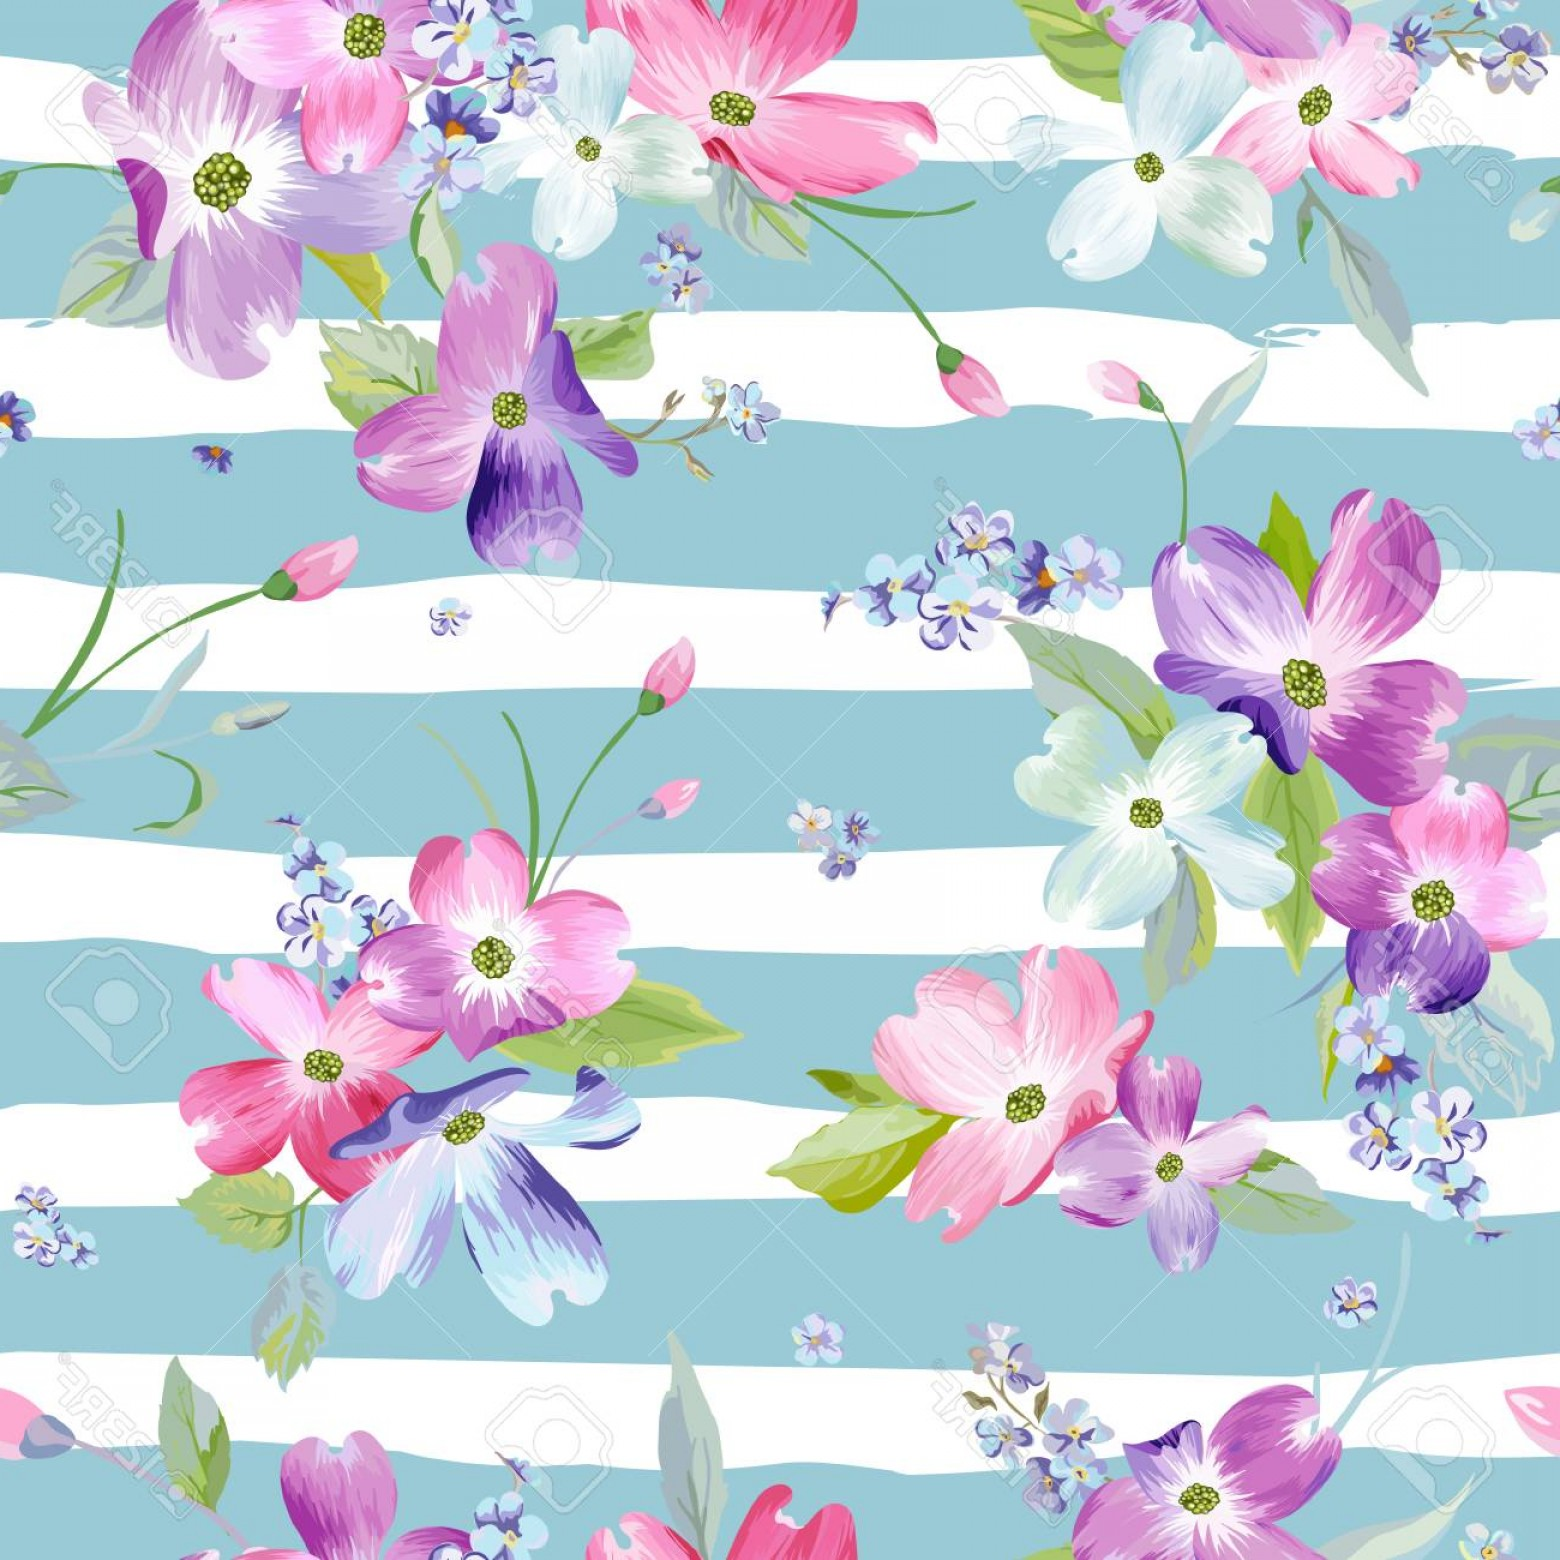 Watercolor Floral Background Vector: Photostock Vector Spring Flowers Seamless Pattern Watercolor Floral Background For Wedding Invitation Fabric Wallpaper